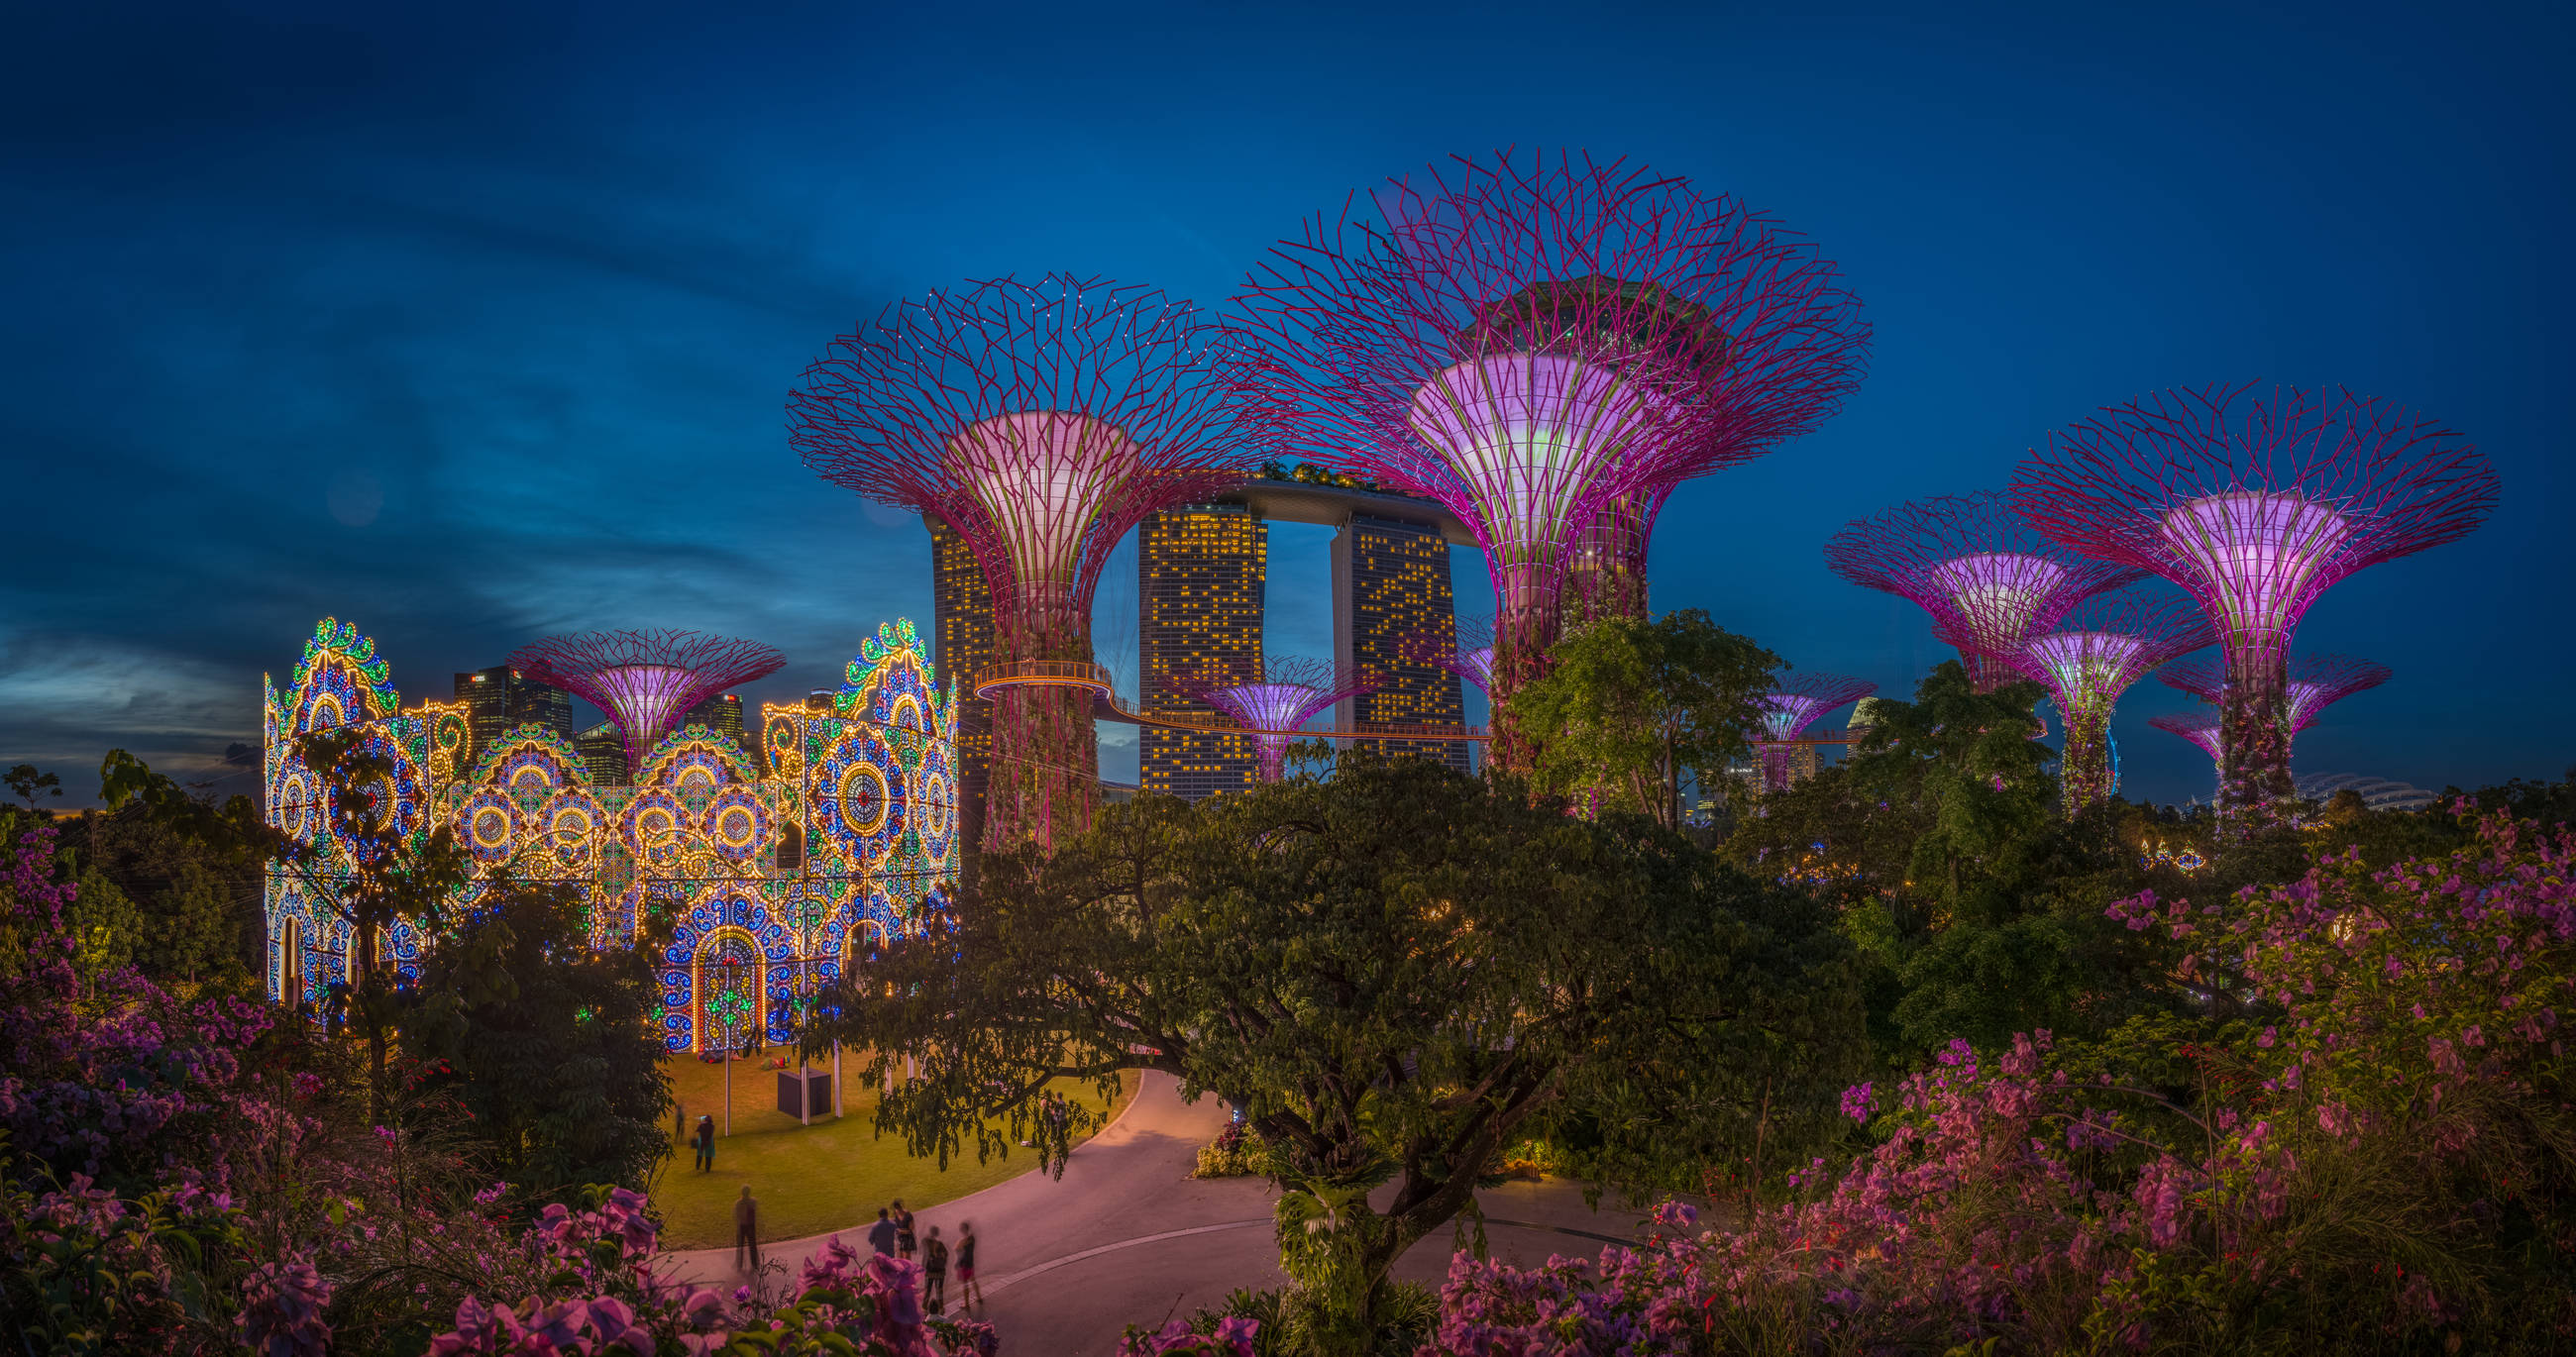 Celebrating-Christmas-In-Singapore? We Help You To Find Out The Best Events